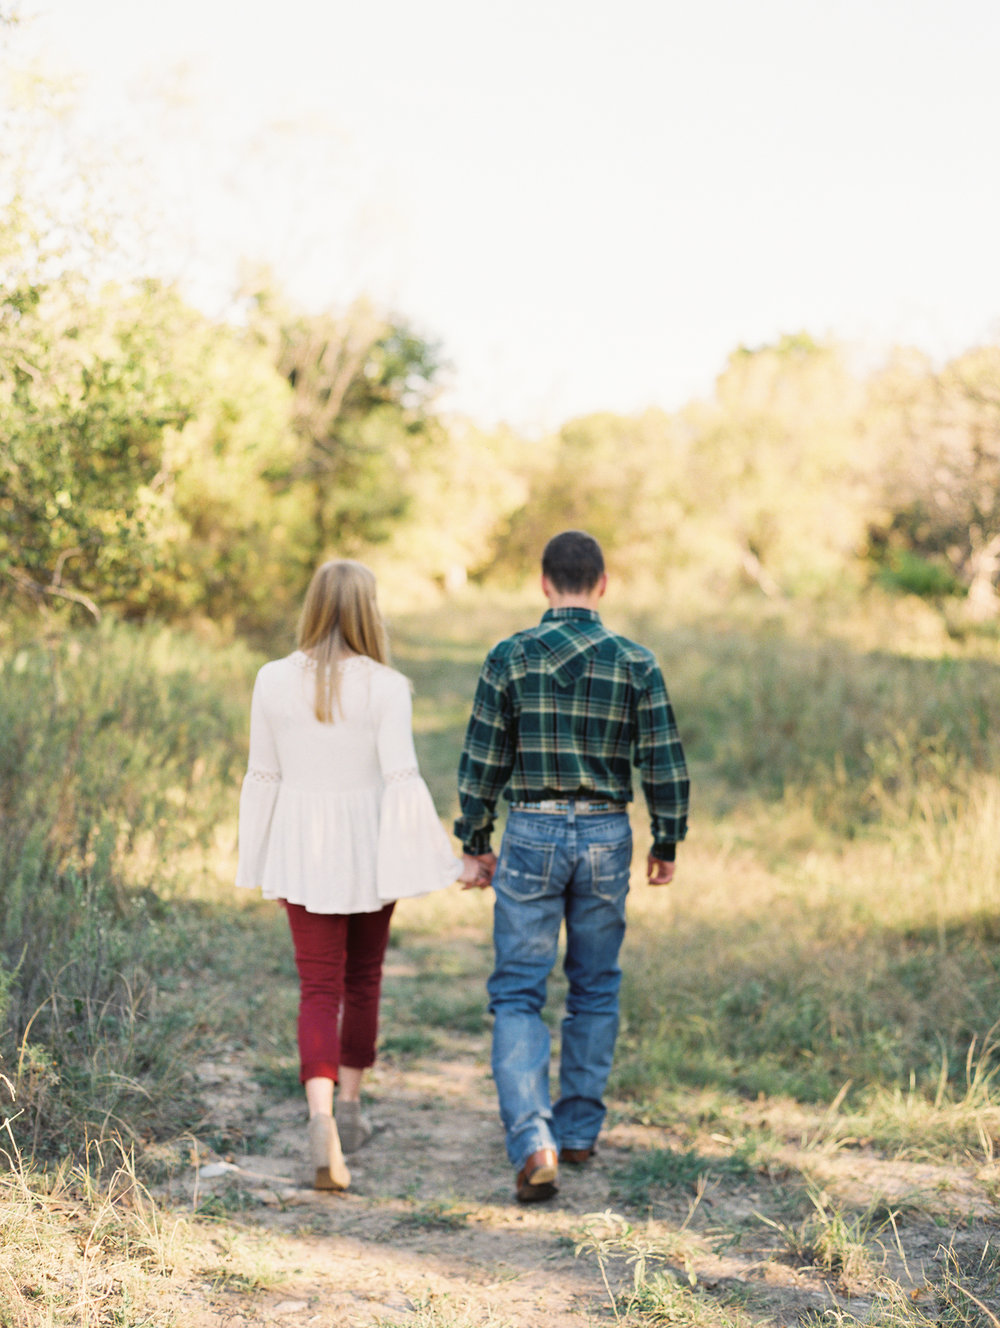 Dylan & Caitlyn | Fall Engagement Session | Britni Dean Photography - Film Engagement Photographer